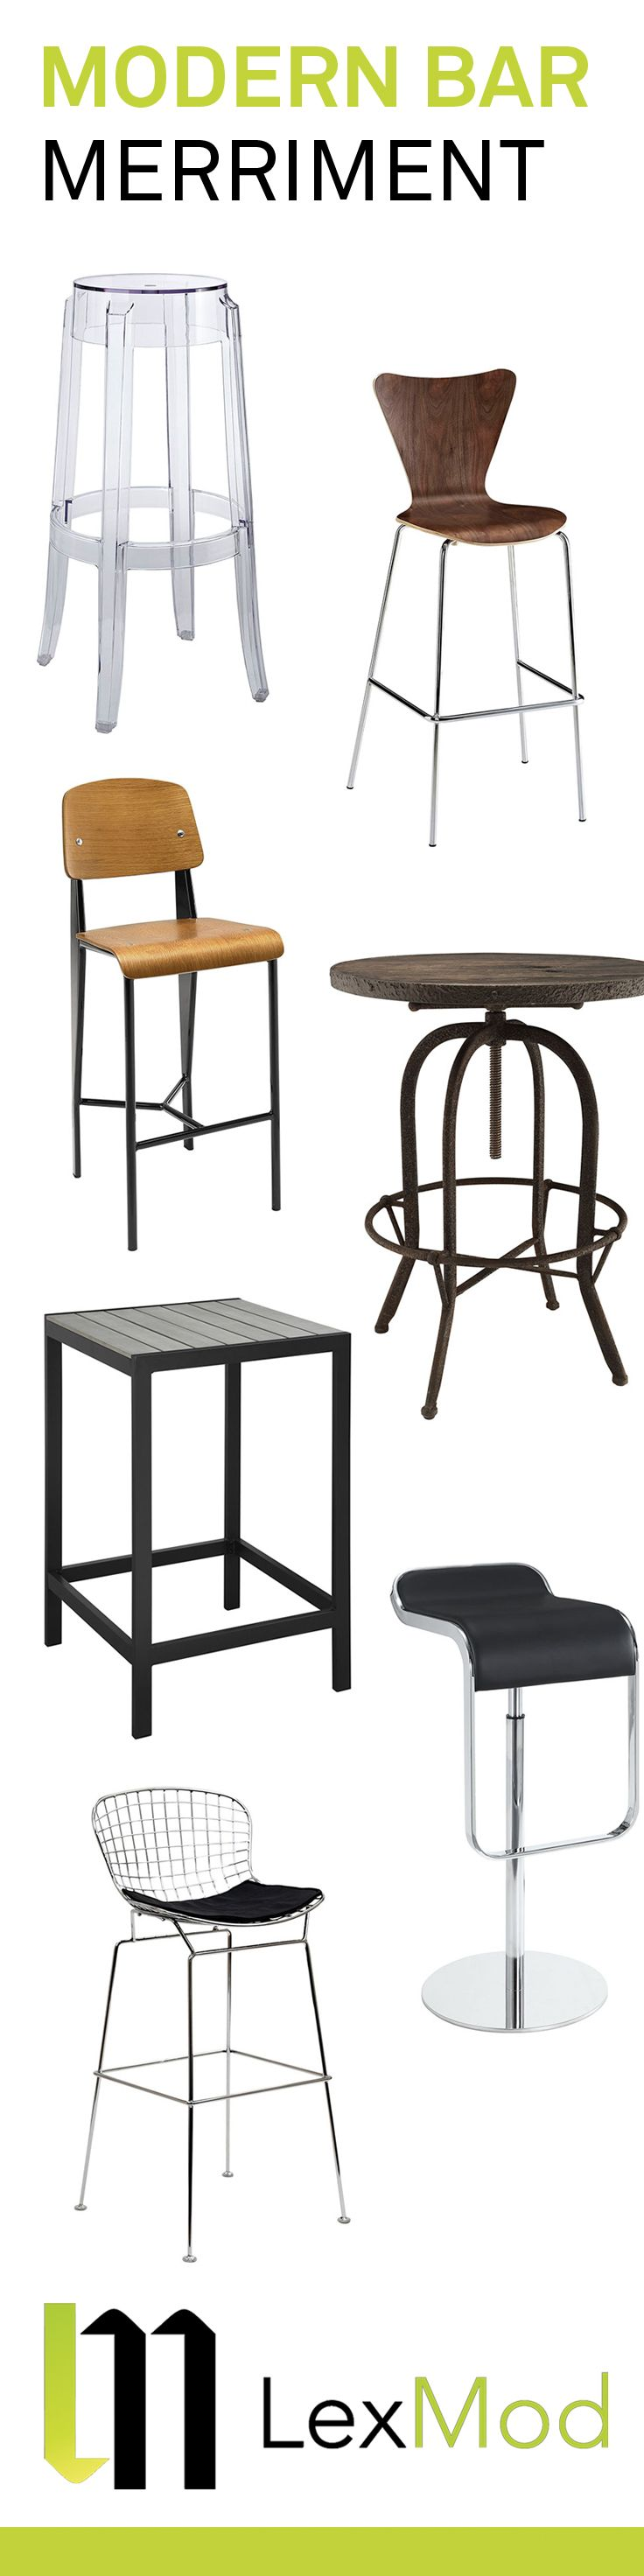 Modern Bar Stools And Tables Factory Direct Pricing At Lexmod